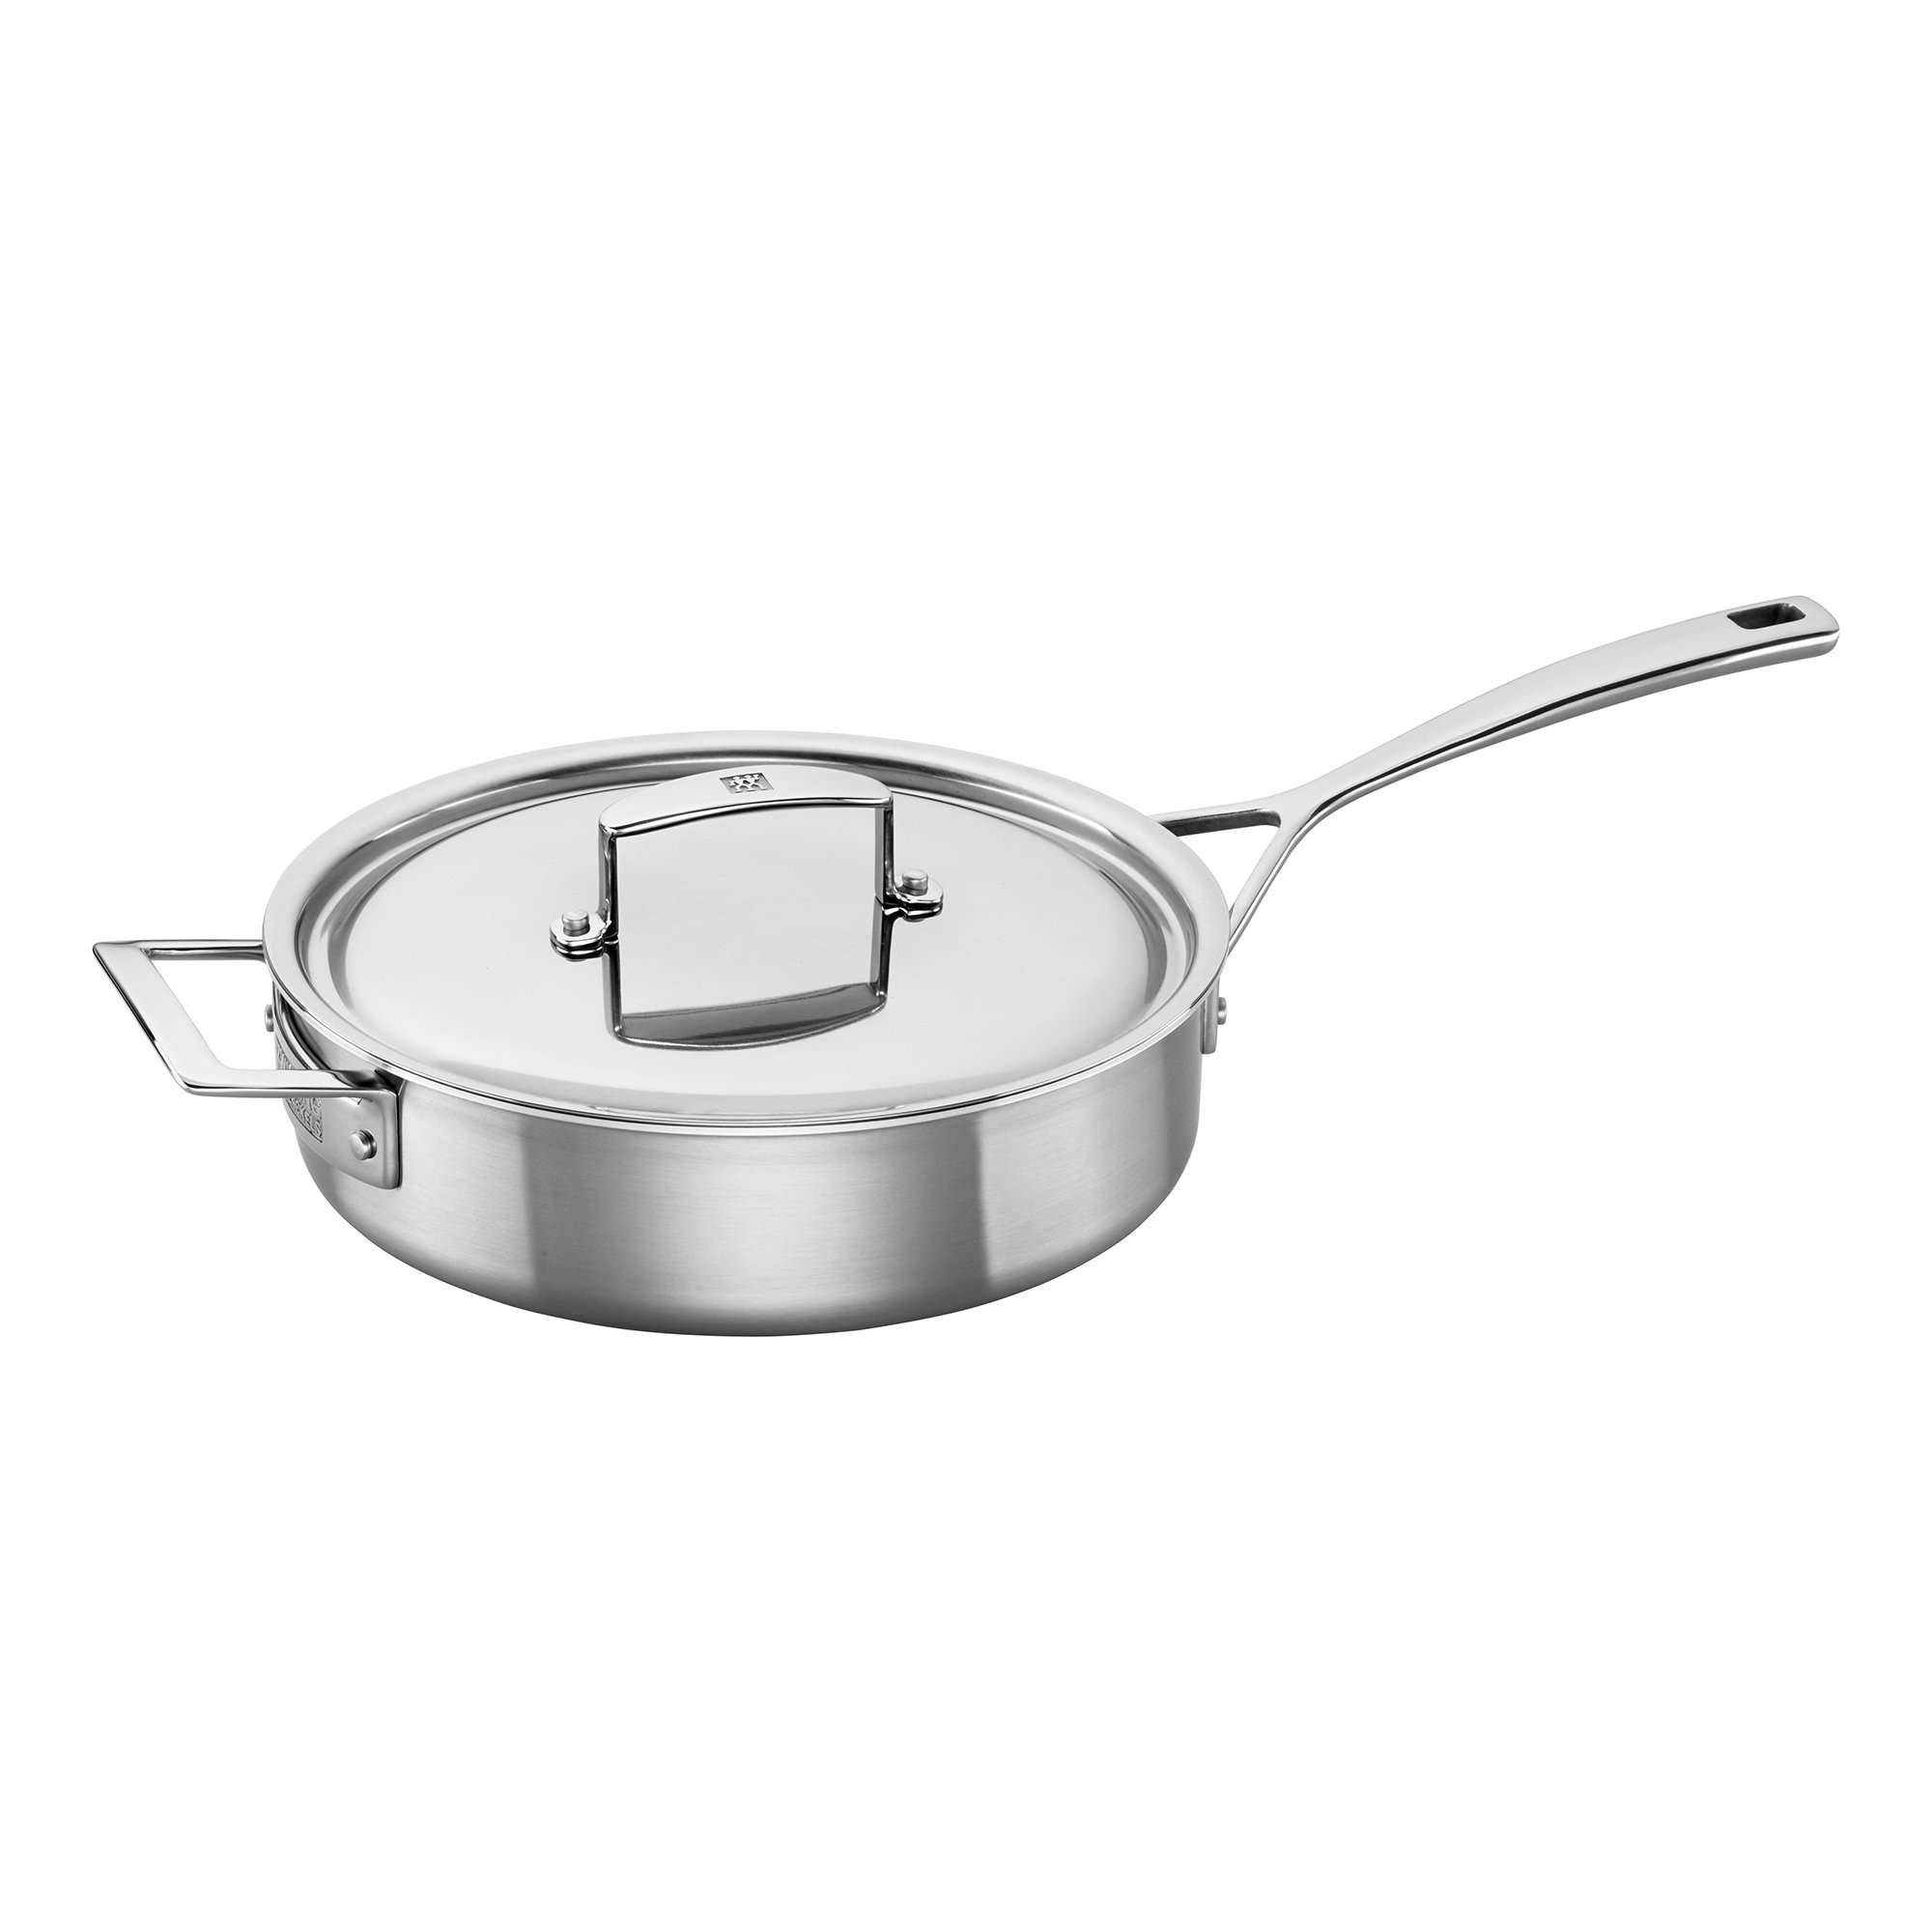 ZWILLING J.A. Henckels 66087-240 Saute Pan, 3 quart, Silver